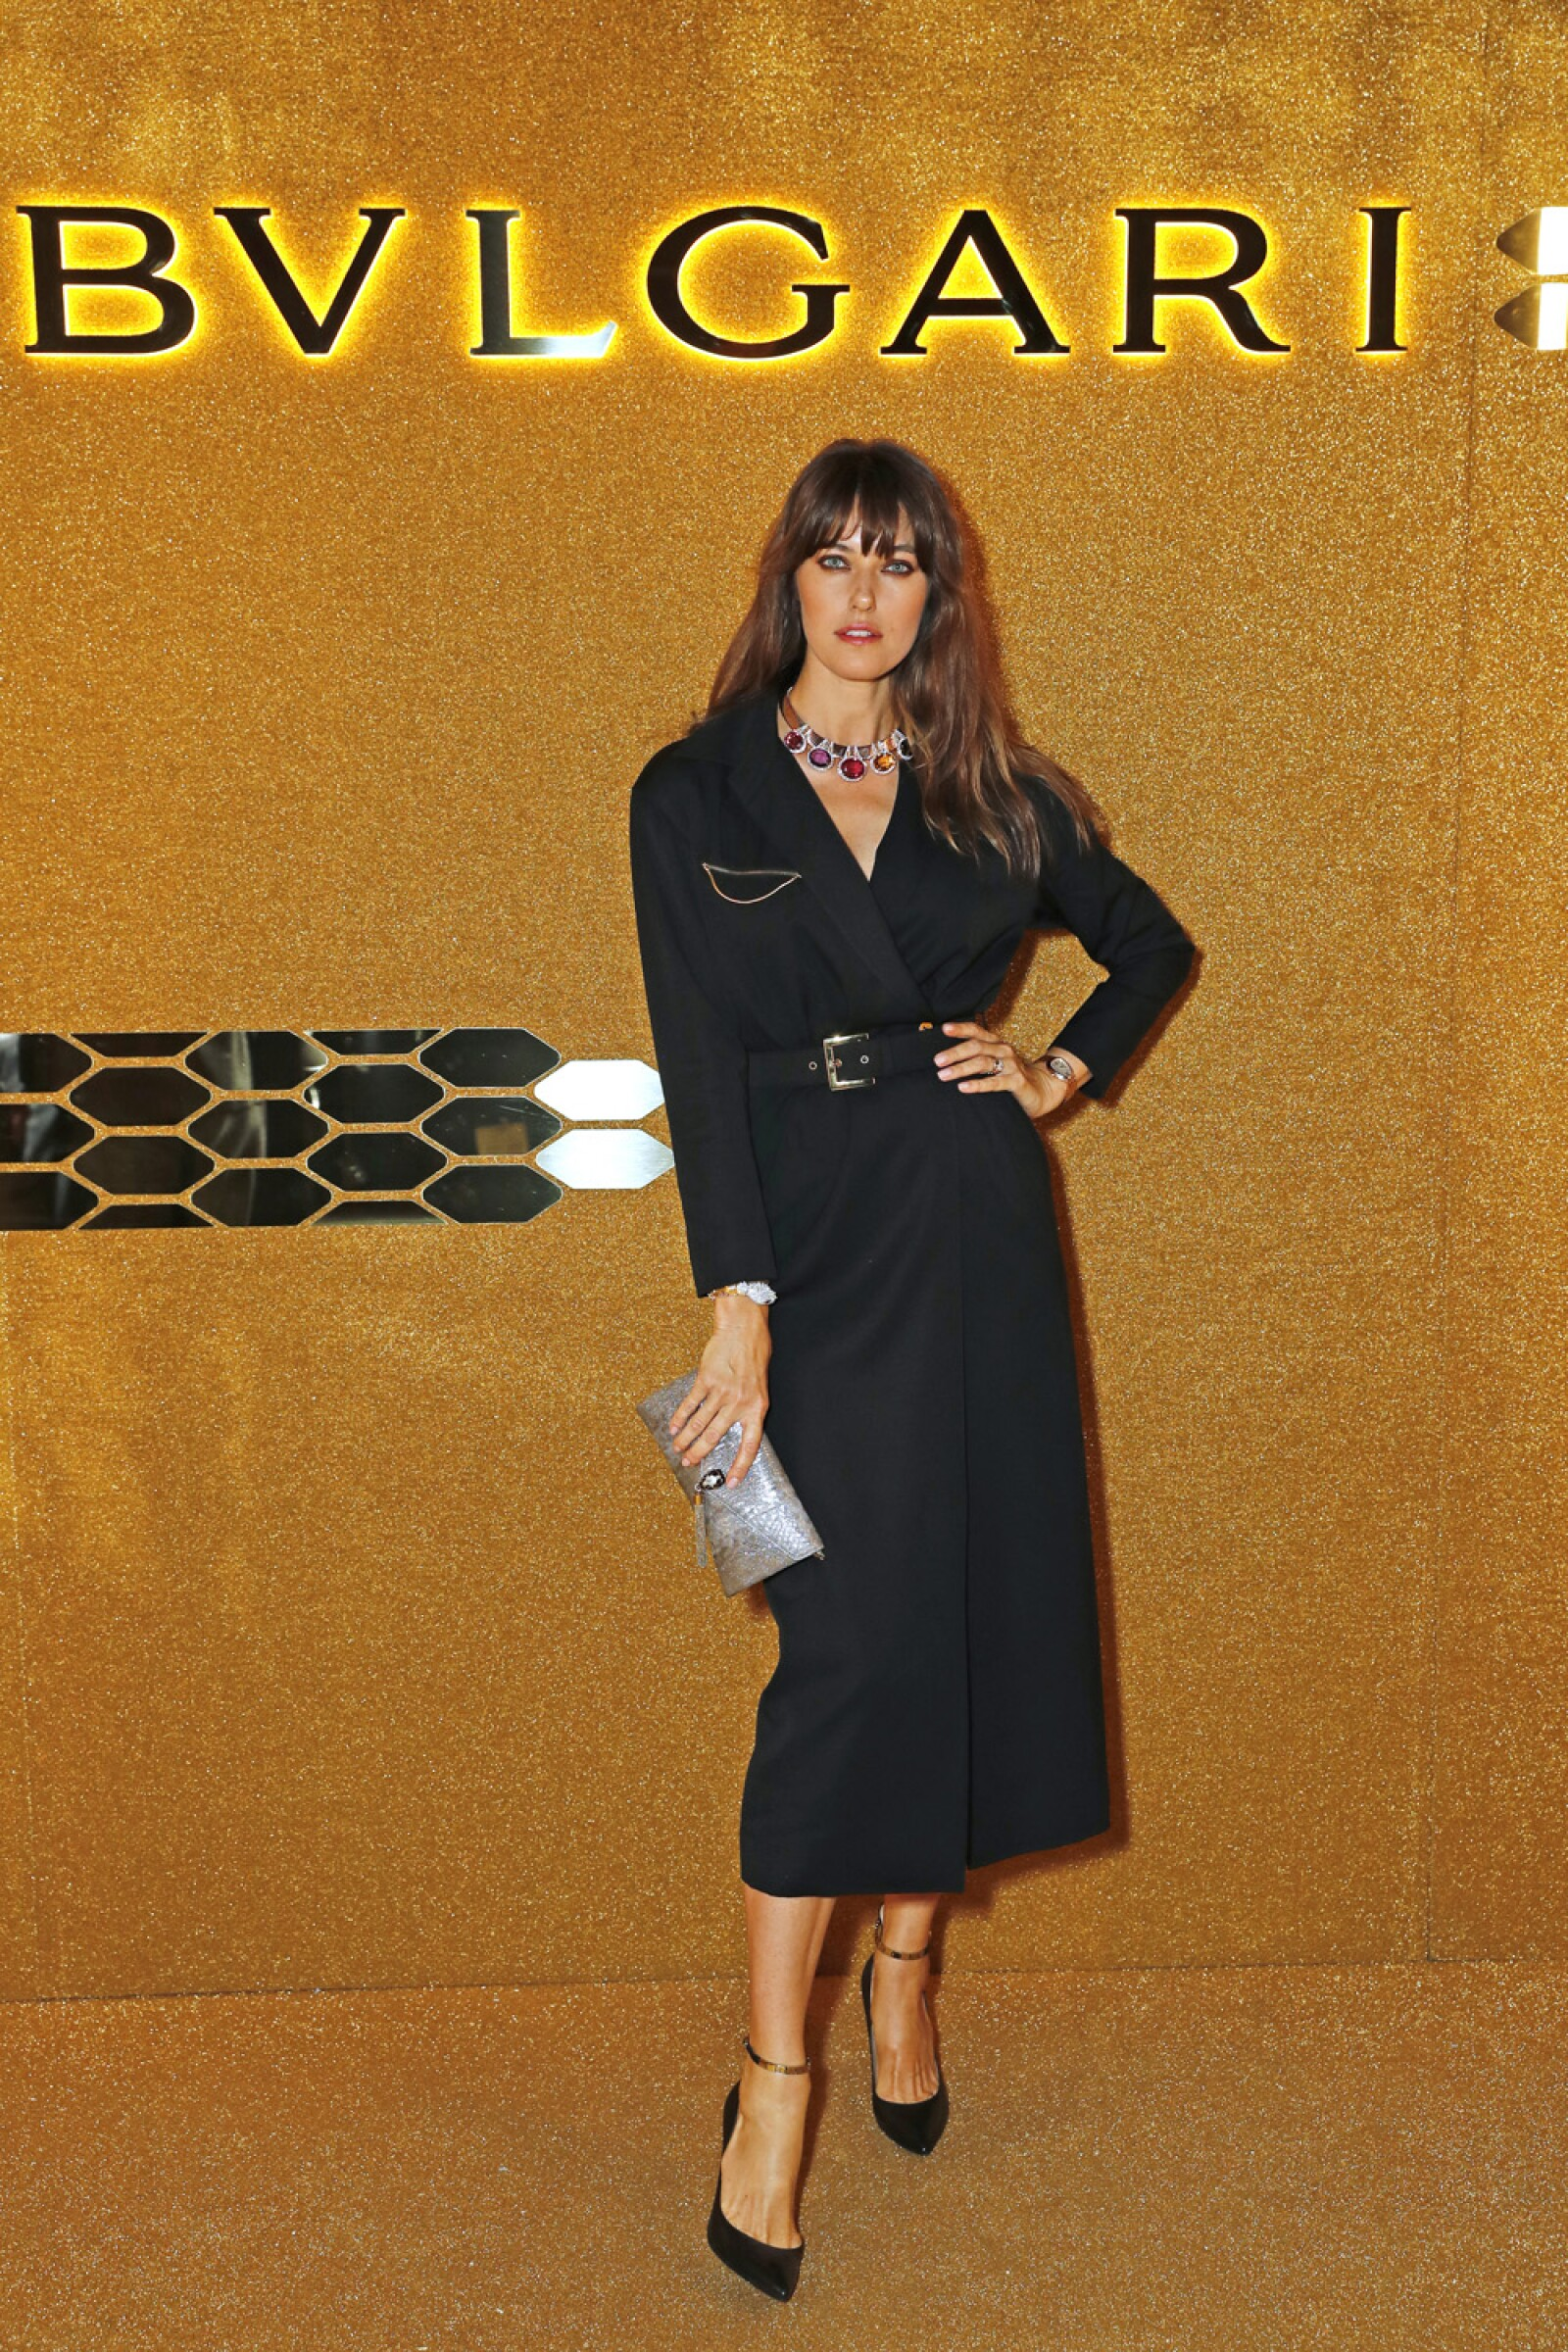 Bvlgari Serpenti Seduttori Launch Event